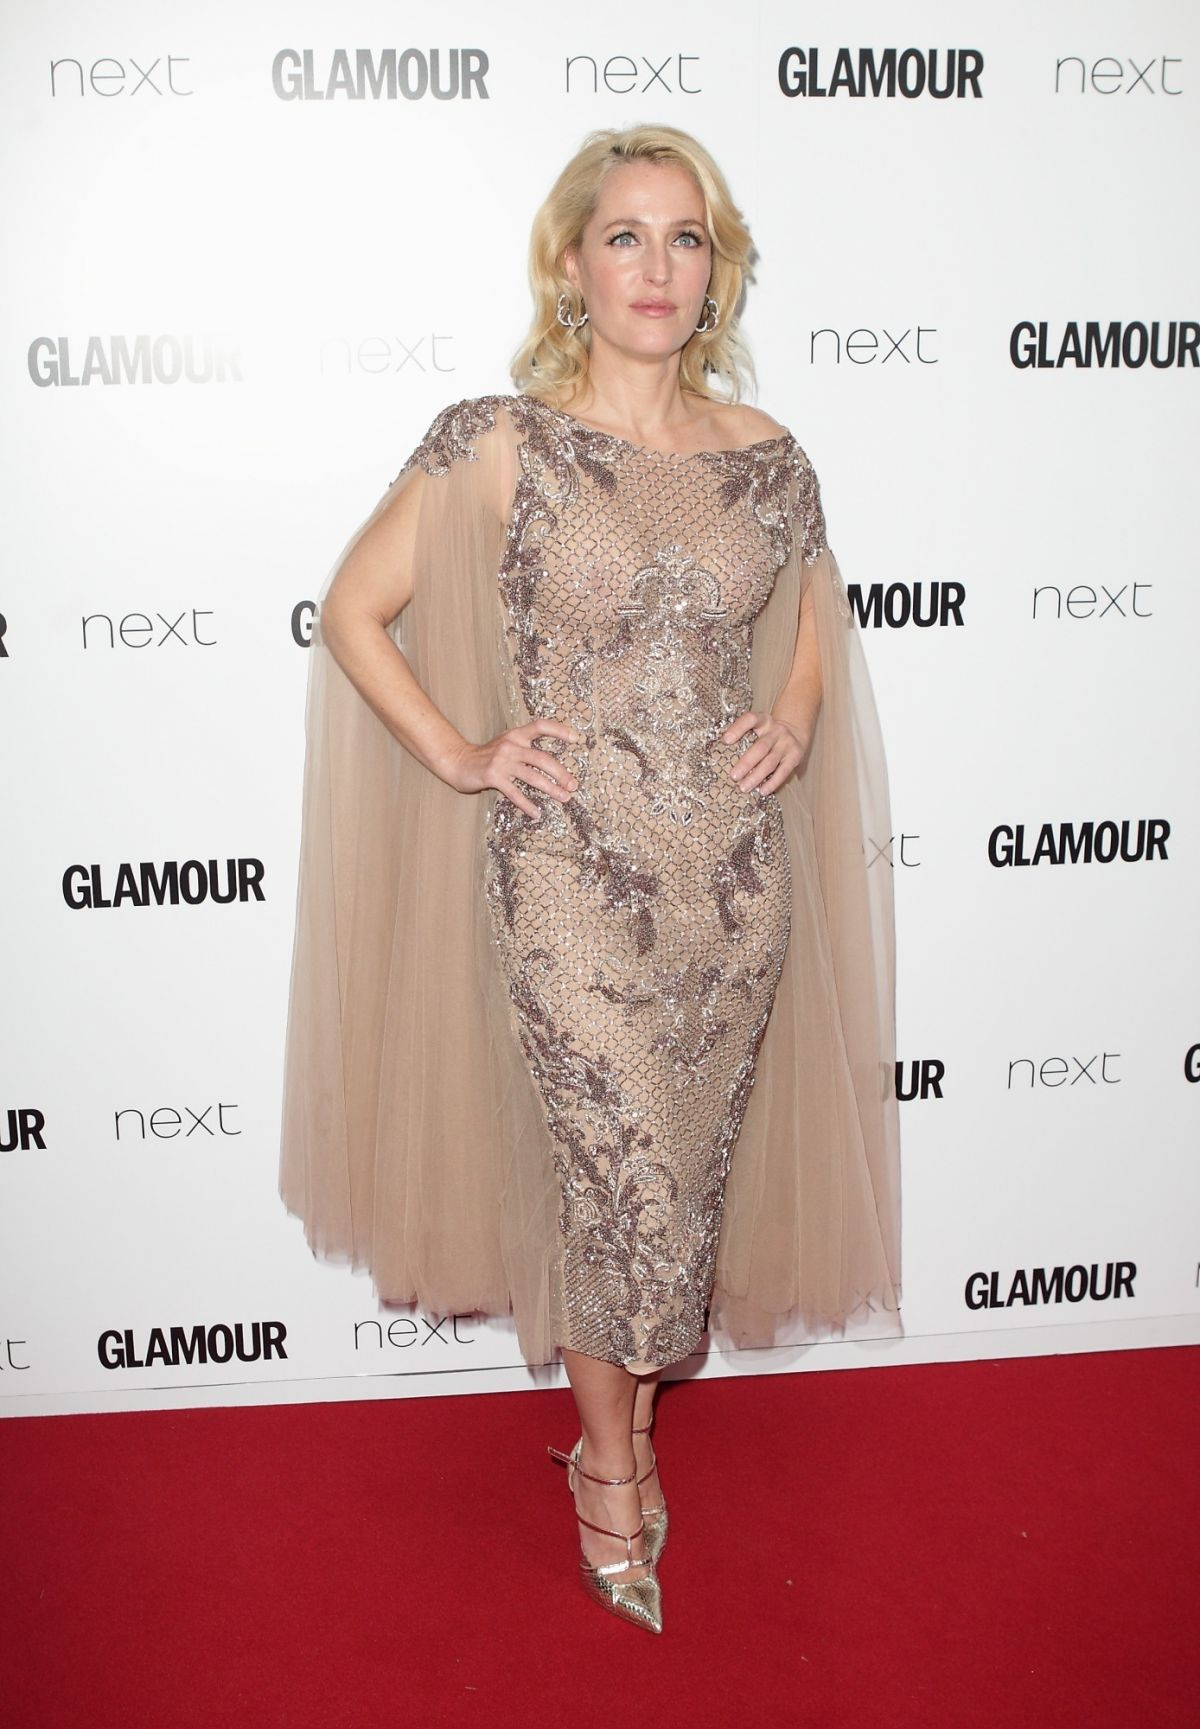 gillian-anderson-at-glamour-women-of-the-year-awards-in-london_1